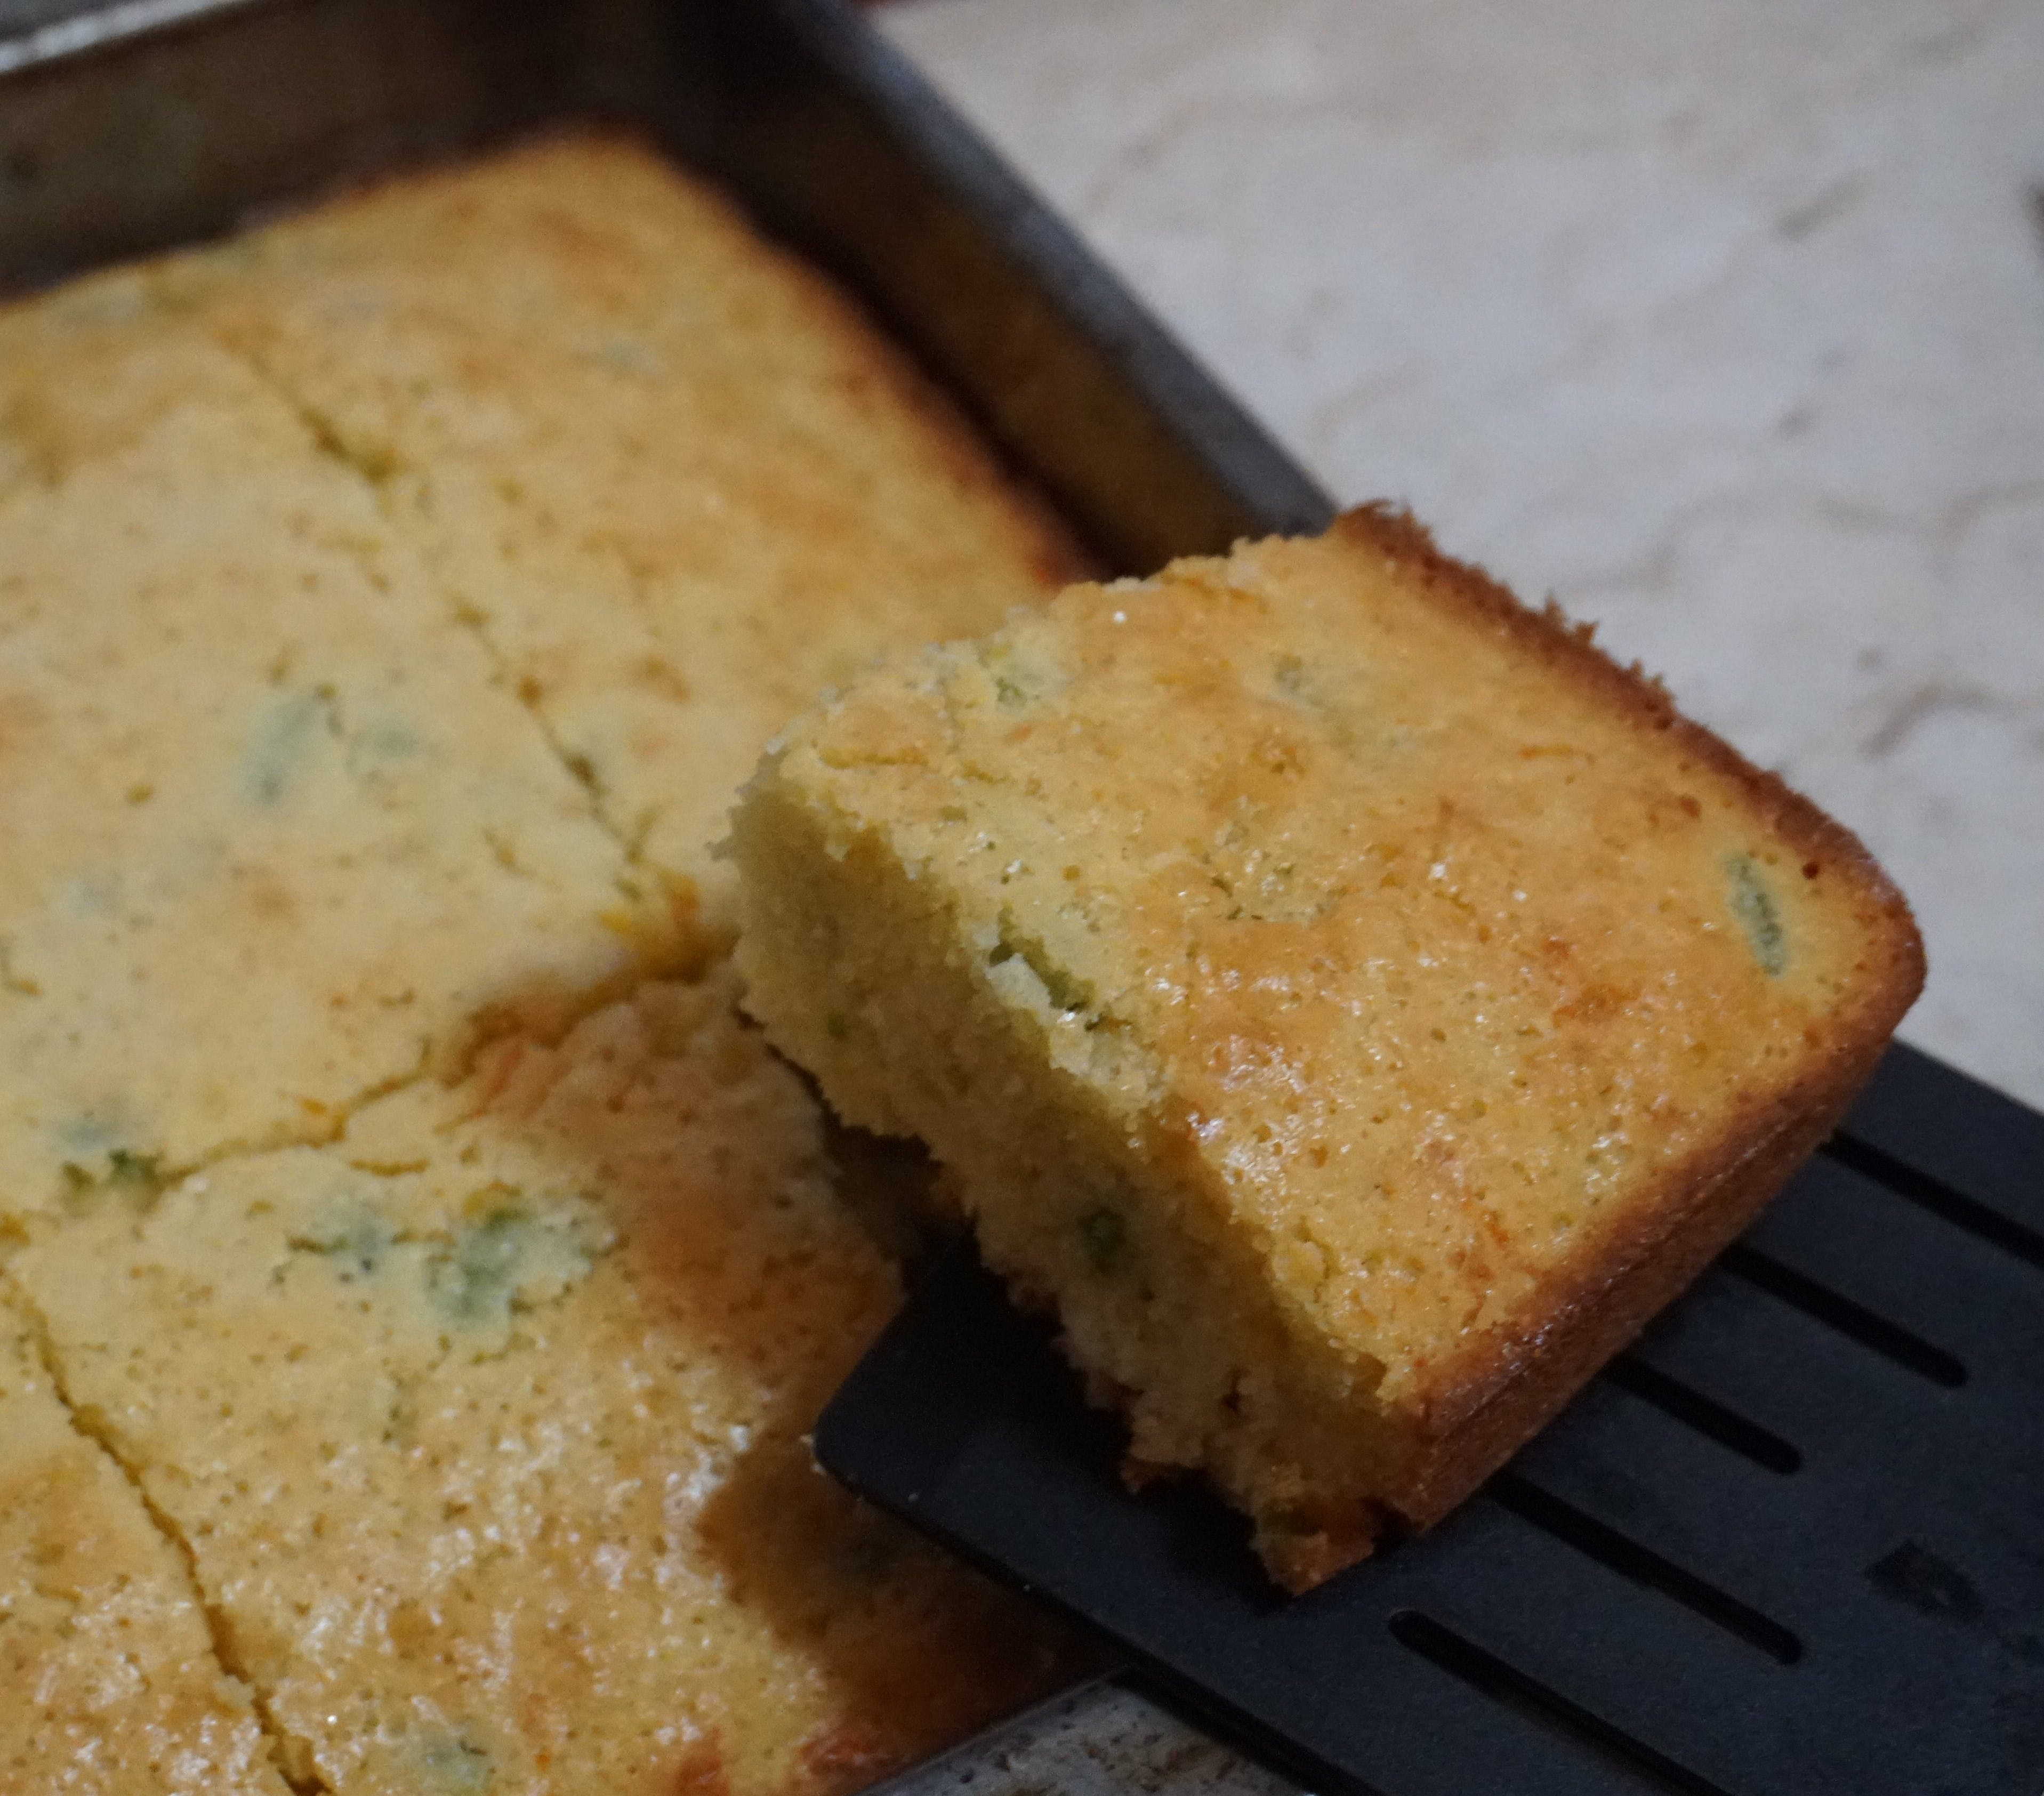 Free stock photo of serving, cornbread, served food, food servings